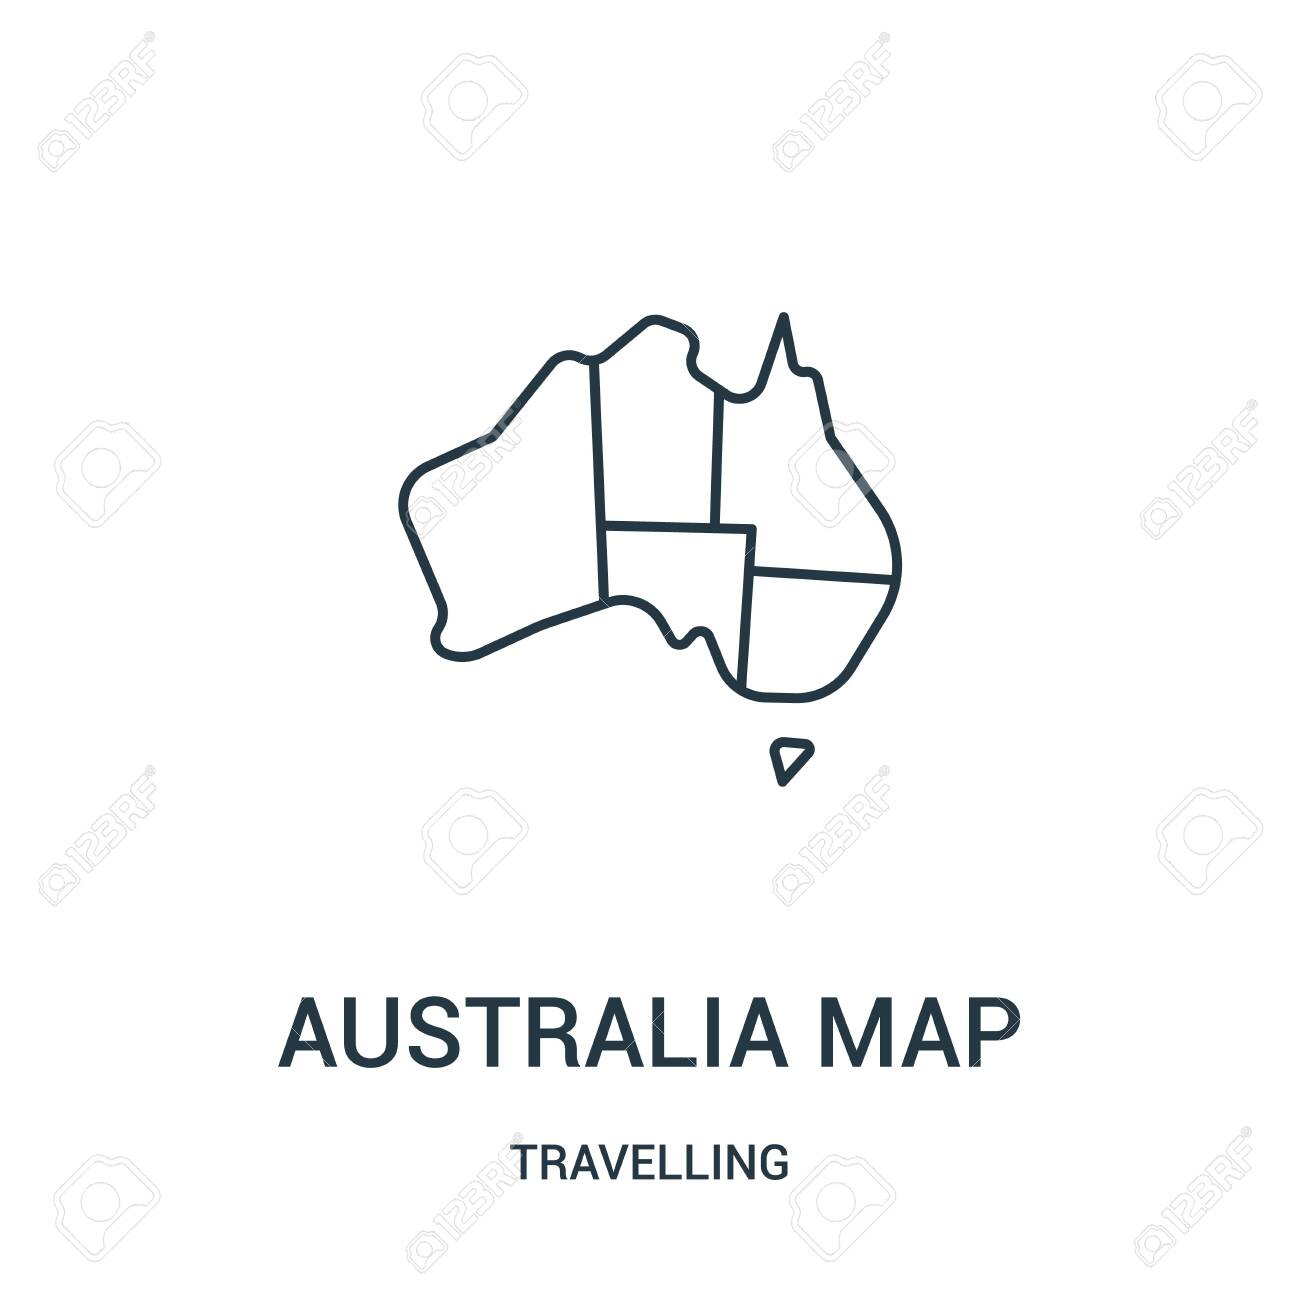 Australia Map Icon.Australia Map Icon Vector From Travelling Collection Thin Line